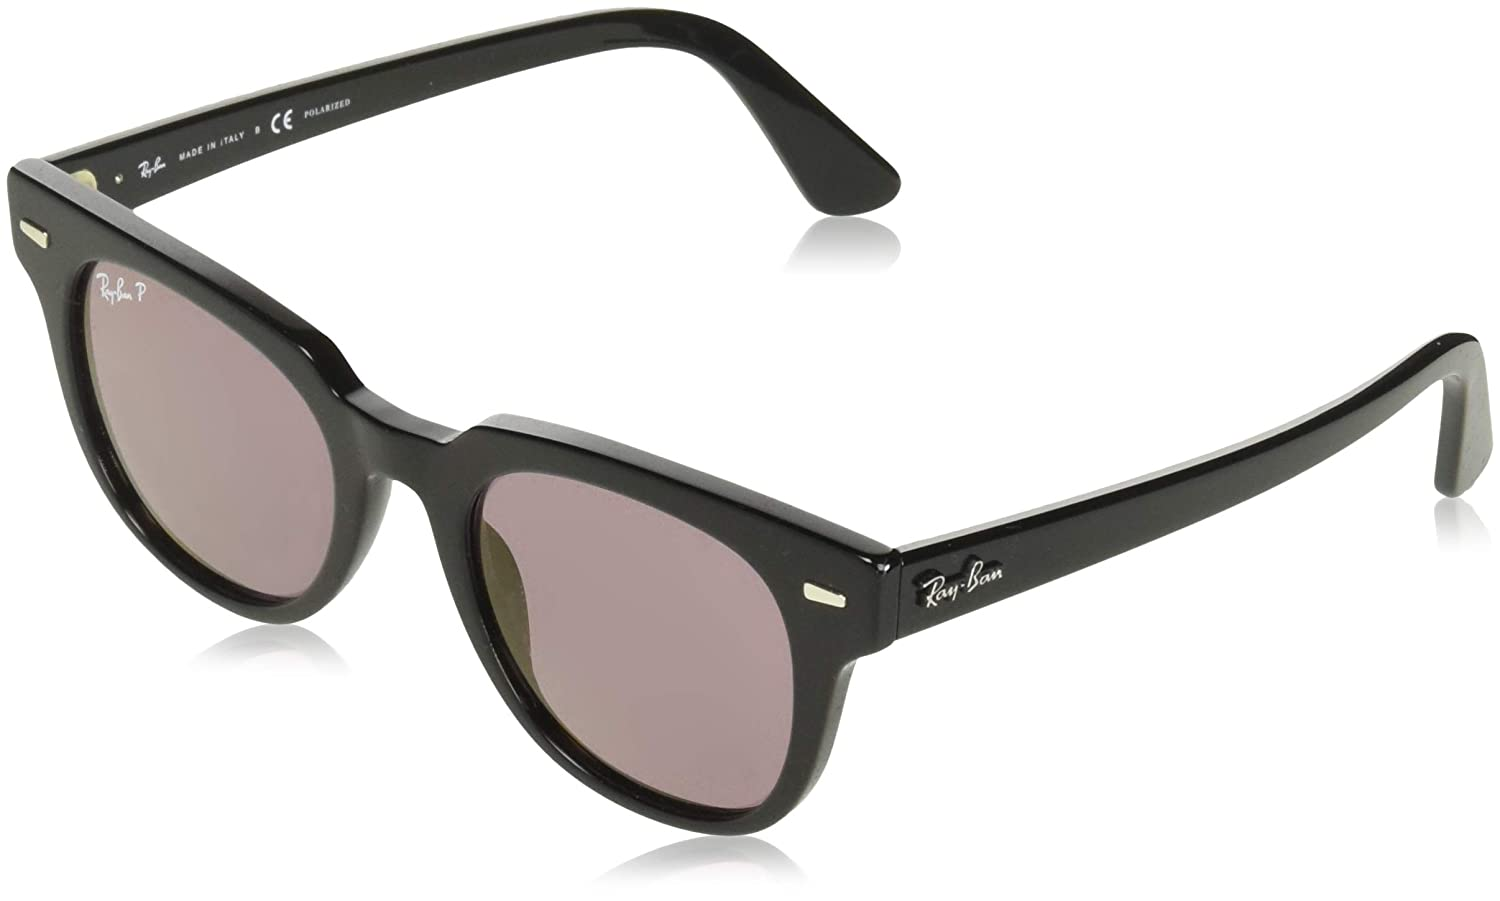 581155084b6 Amazon.com  Ray-Ban 0rb2168 Polarized Iridium Square Sunglasses Black 51.0  mm  Clothing